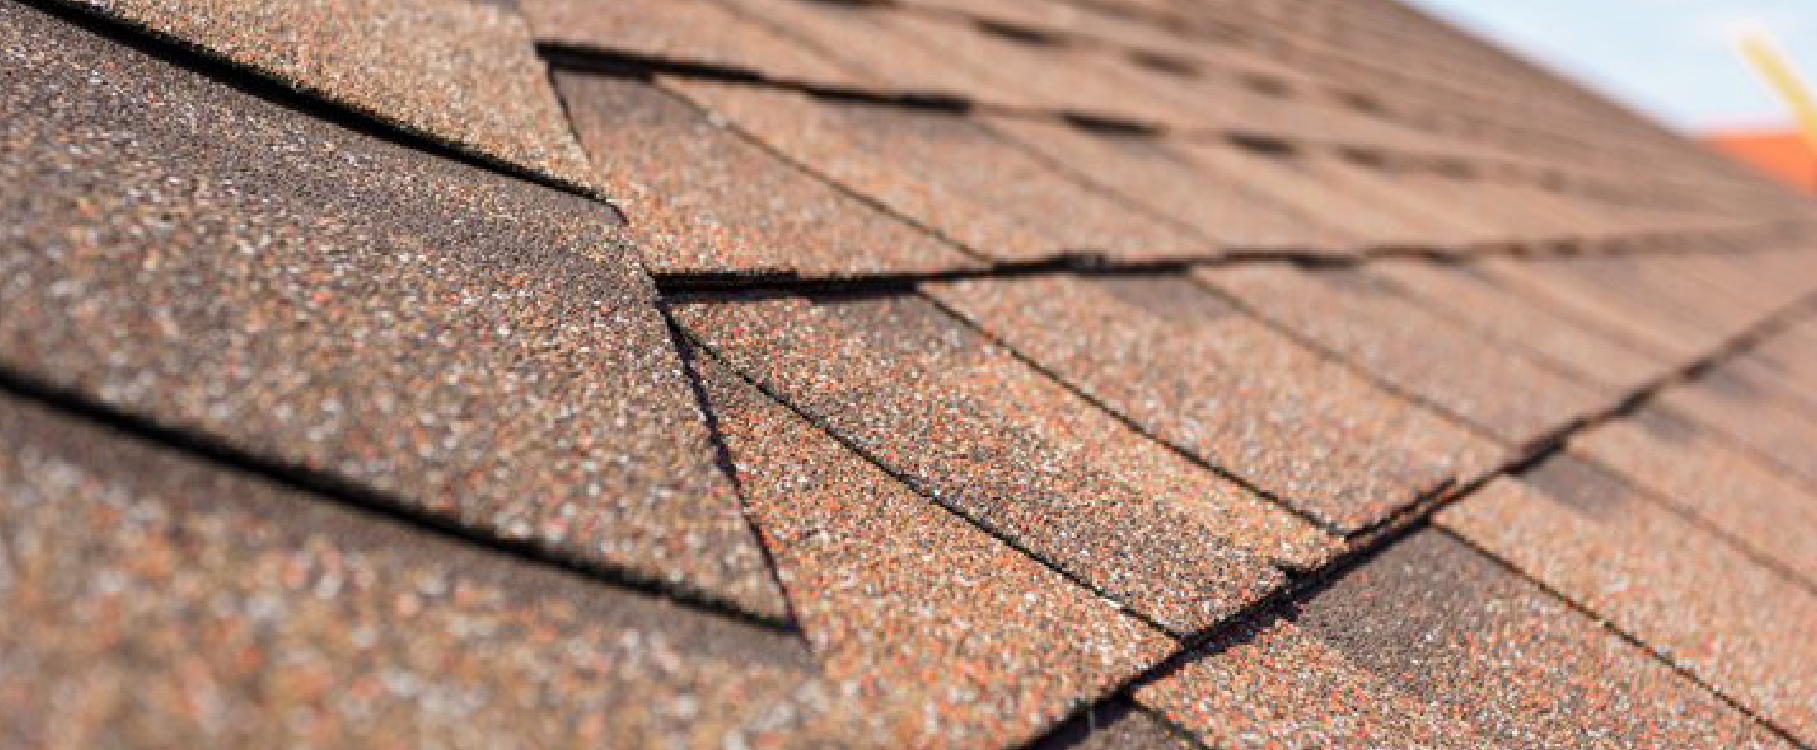 Blog 4roofing image